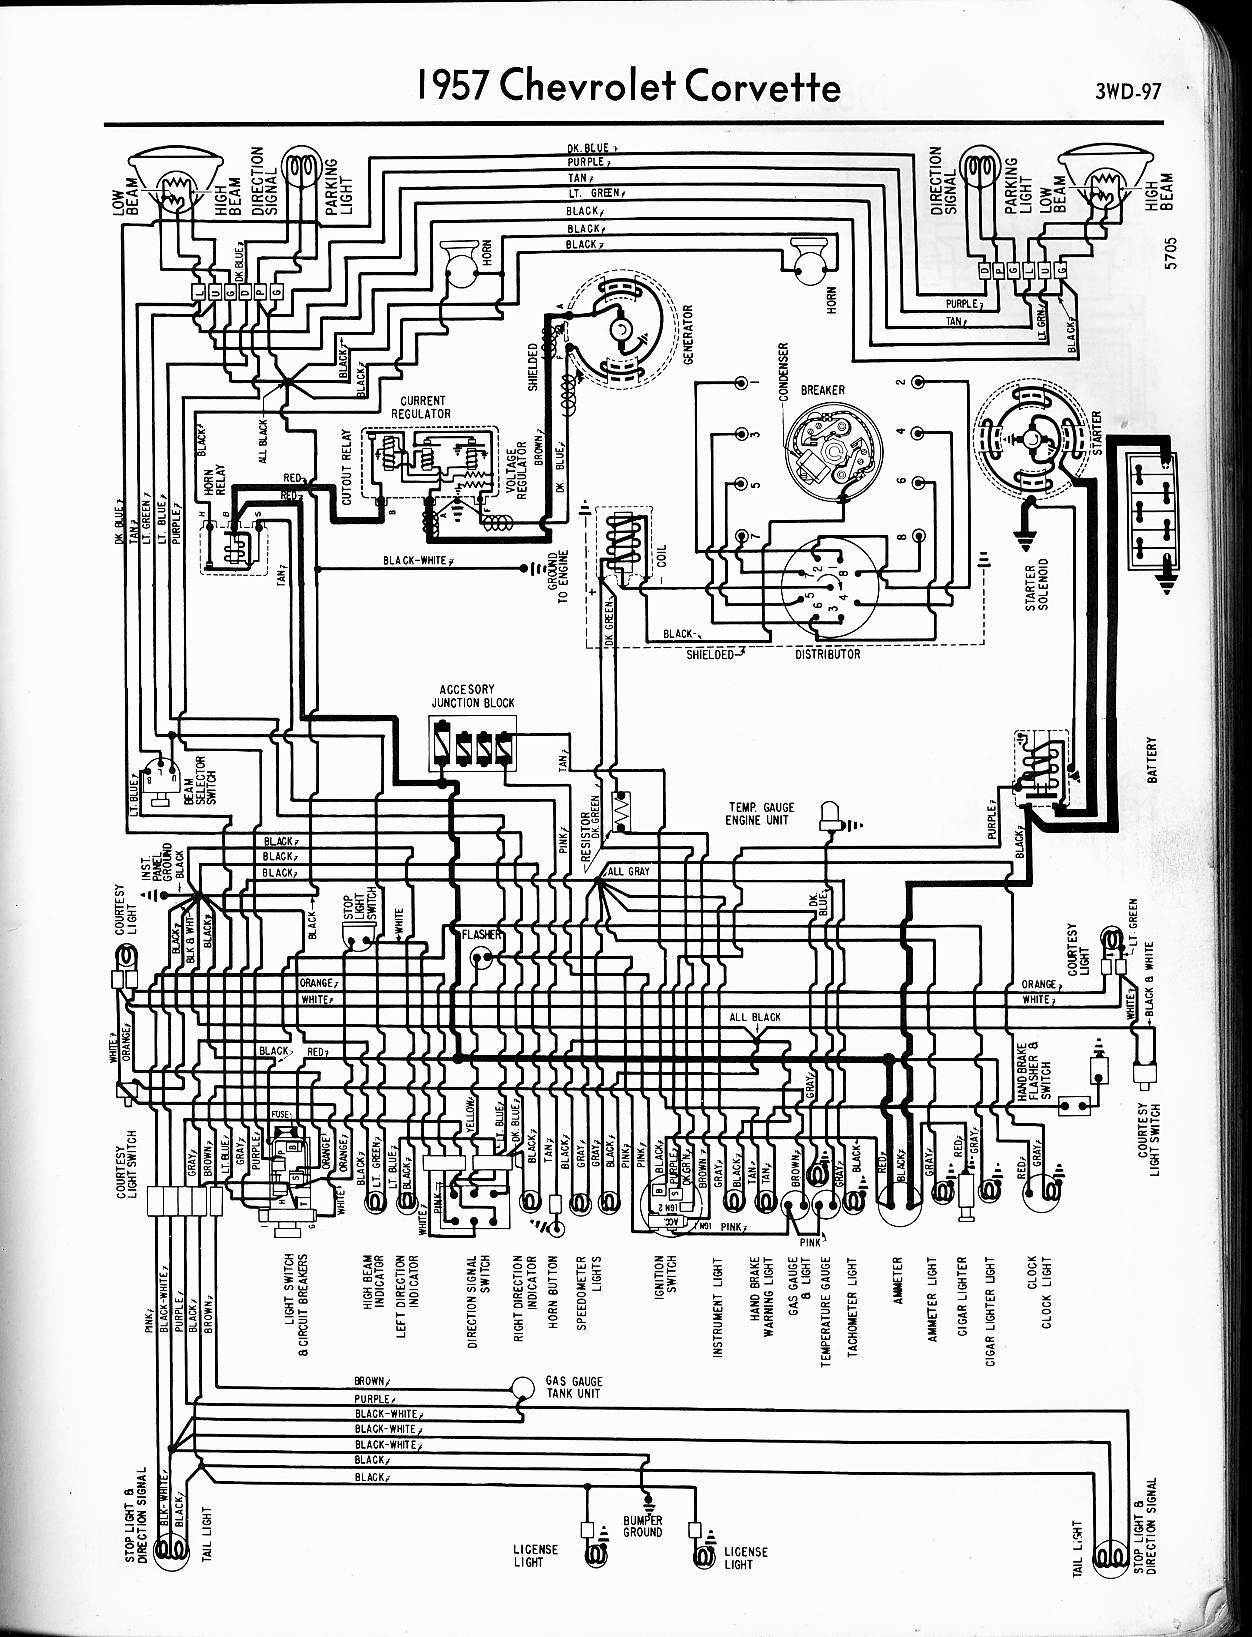 MWireChev57_3WD 097 57 65 chevy wiring diagrams 1960 Chevy Wiring Diagram at fashall.co